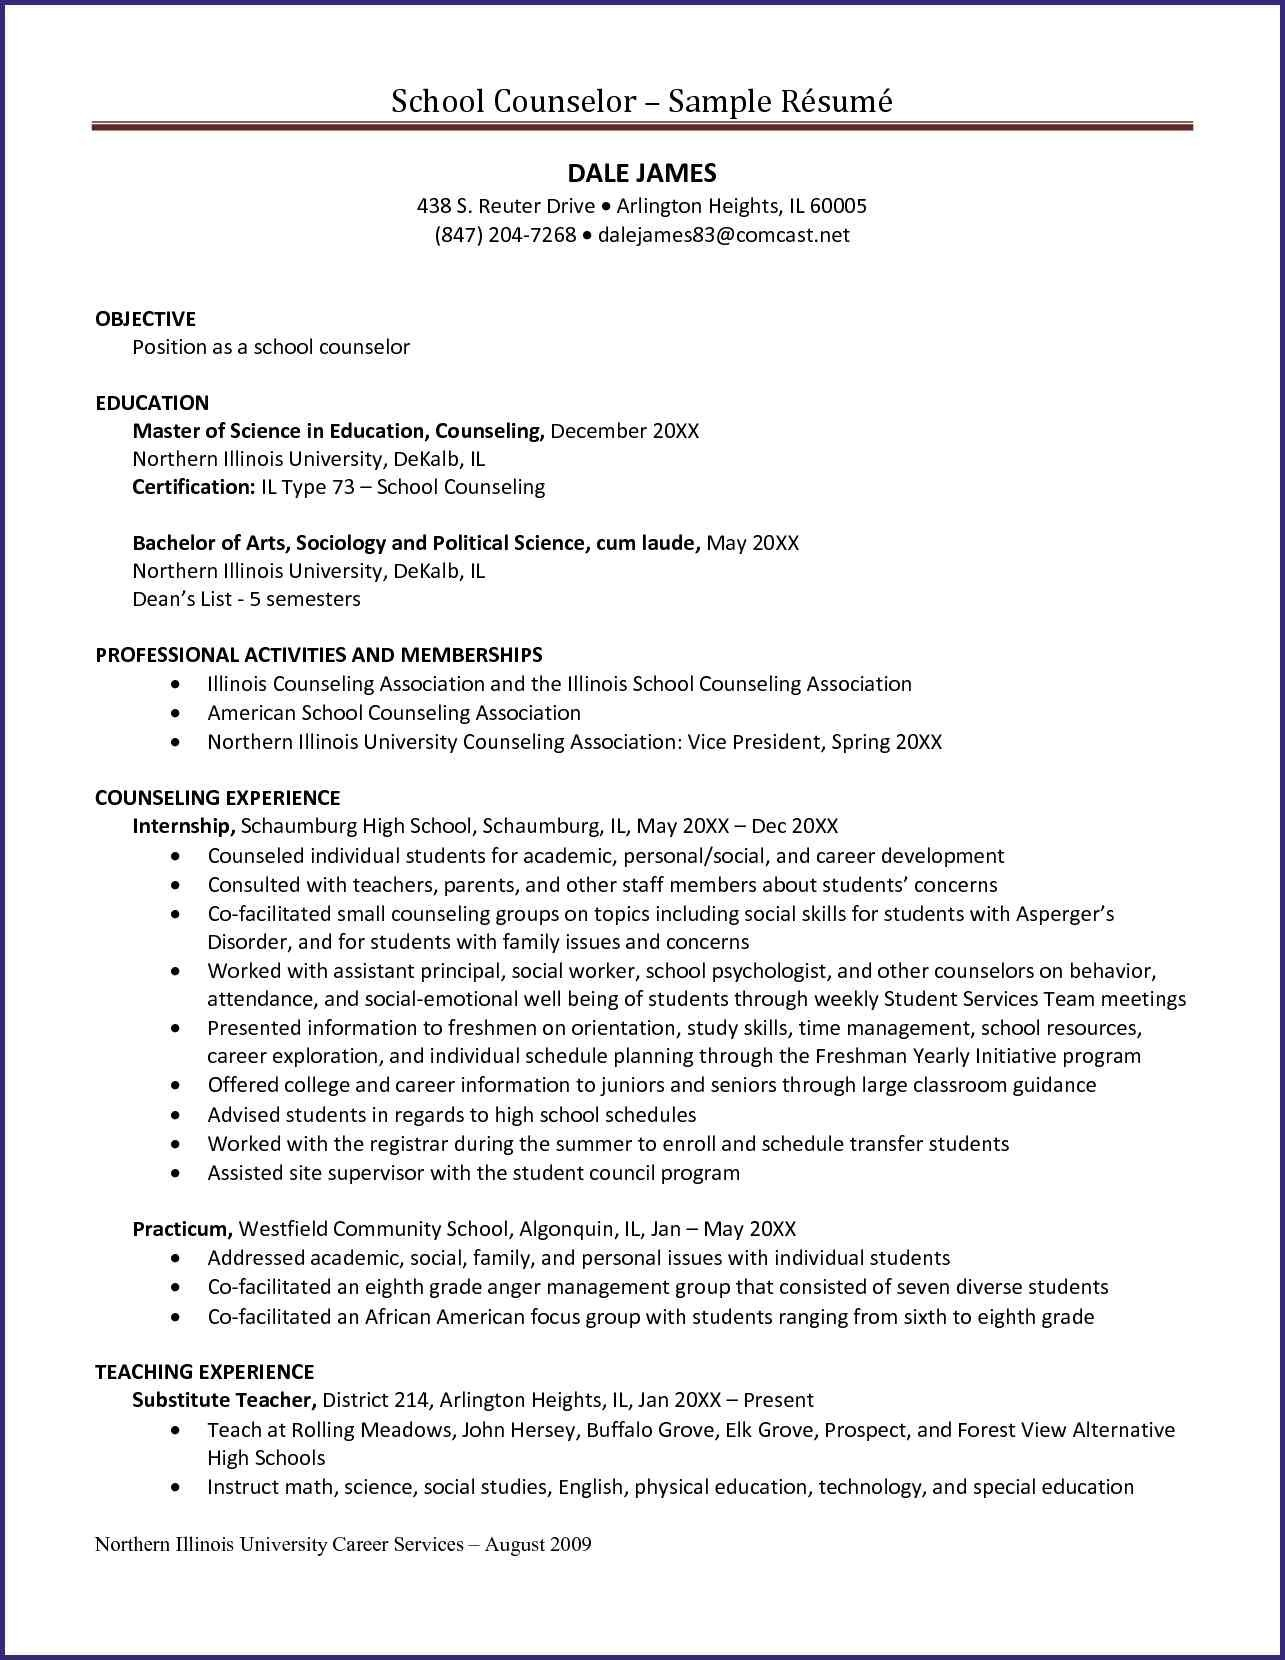 School Counselor Resume Template - 23 Camp Counselor Resume